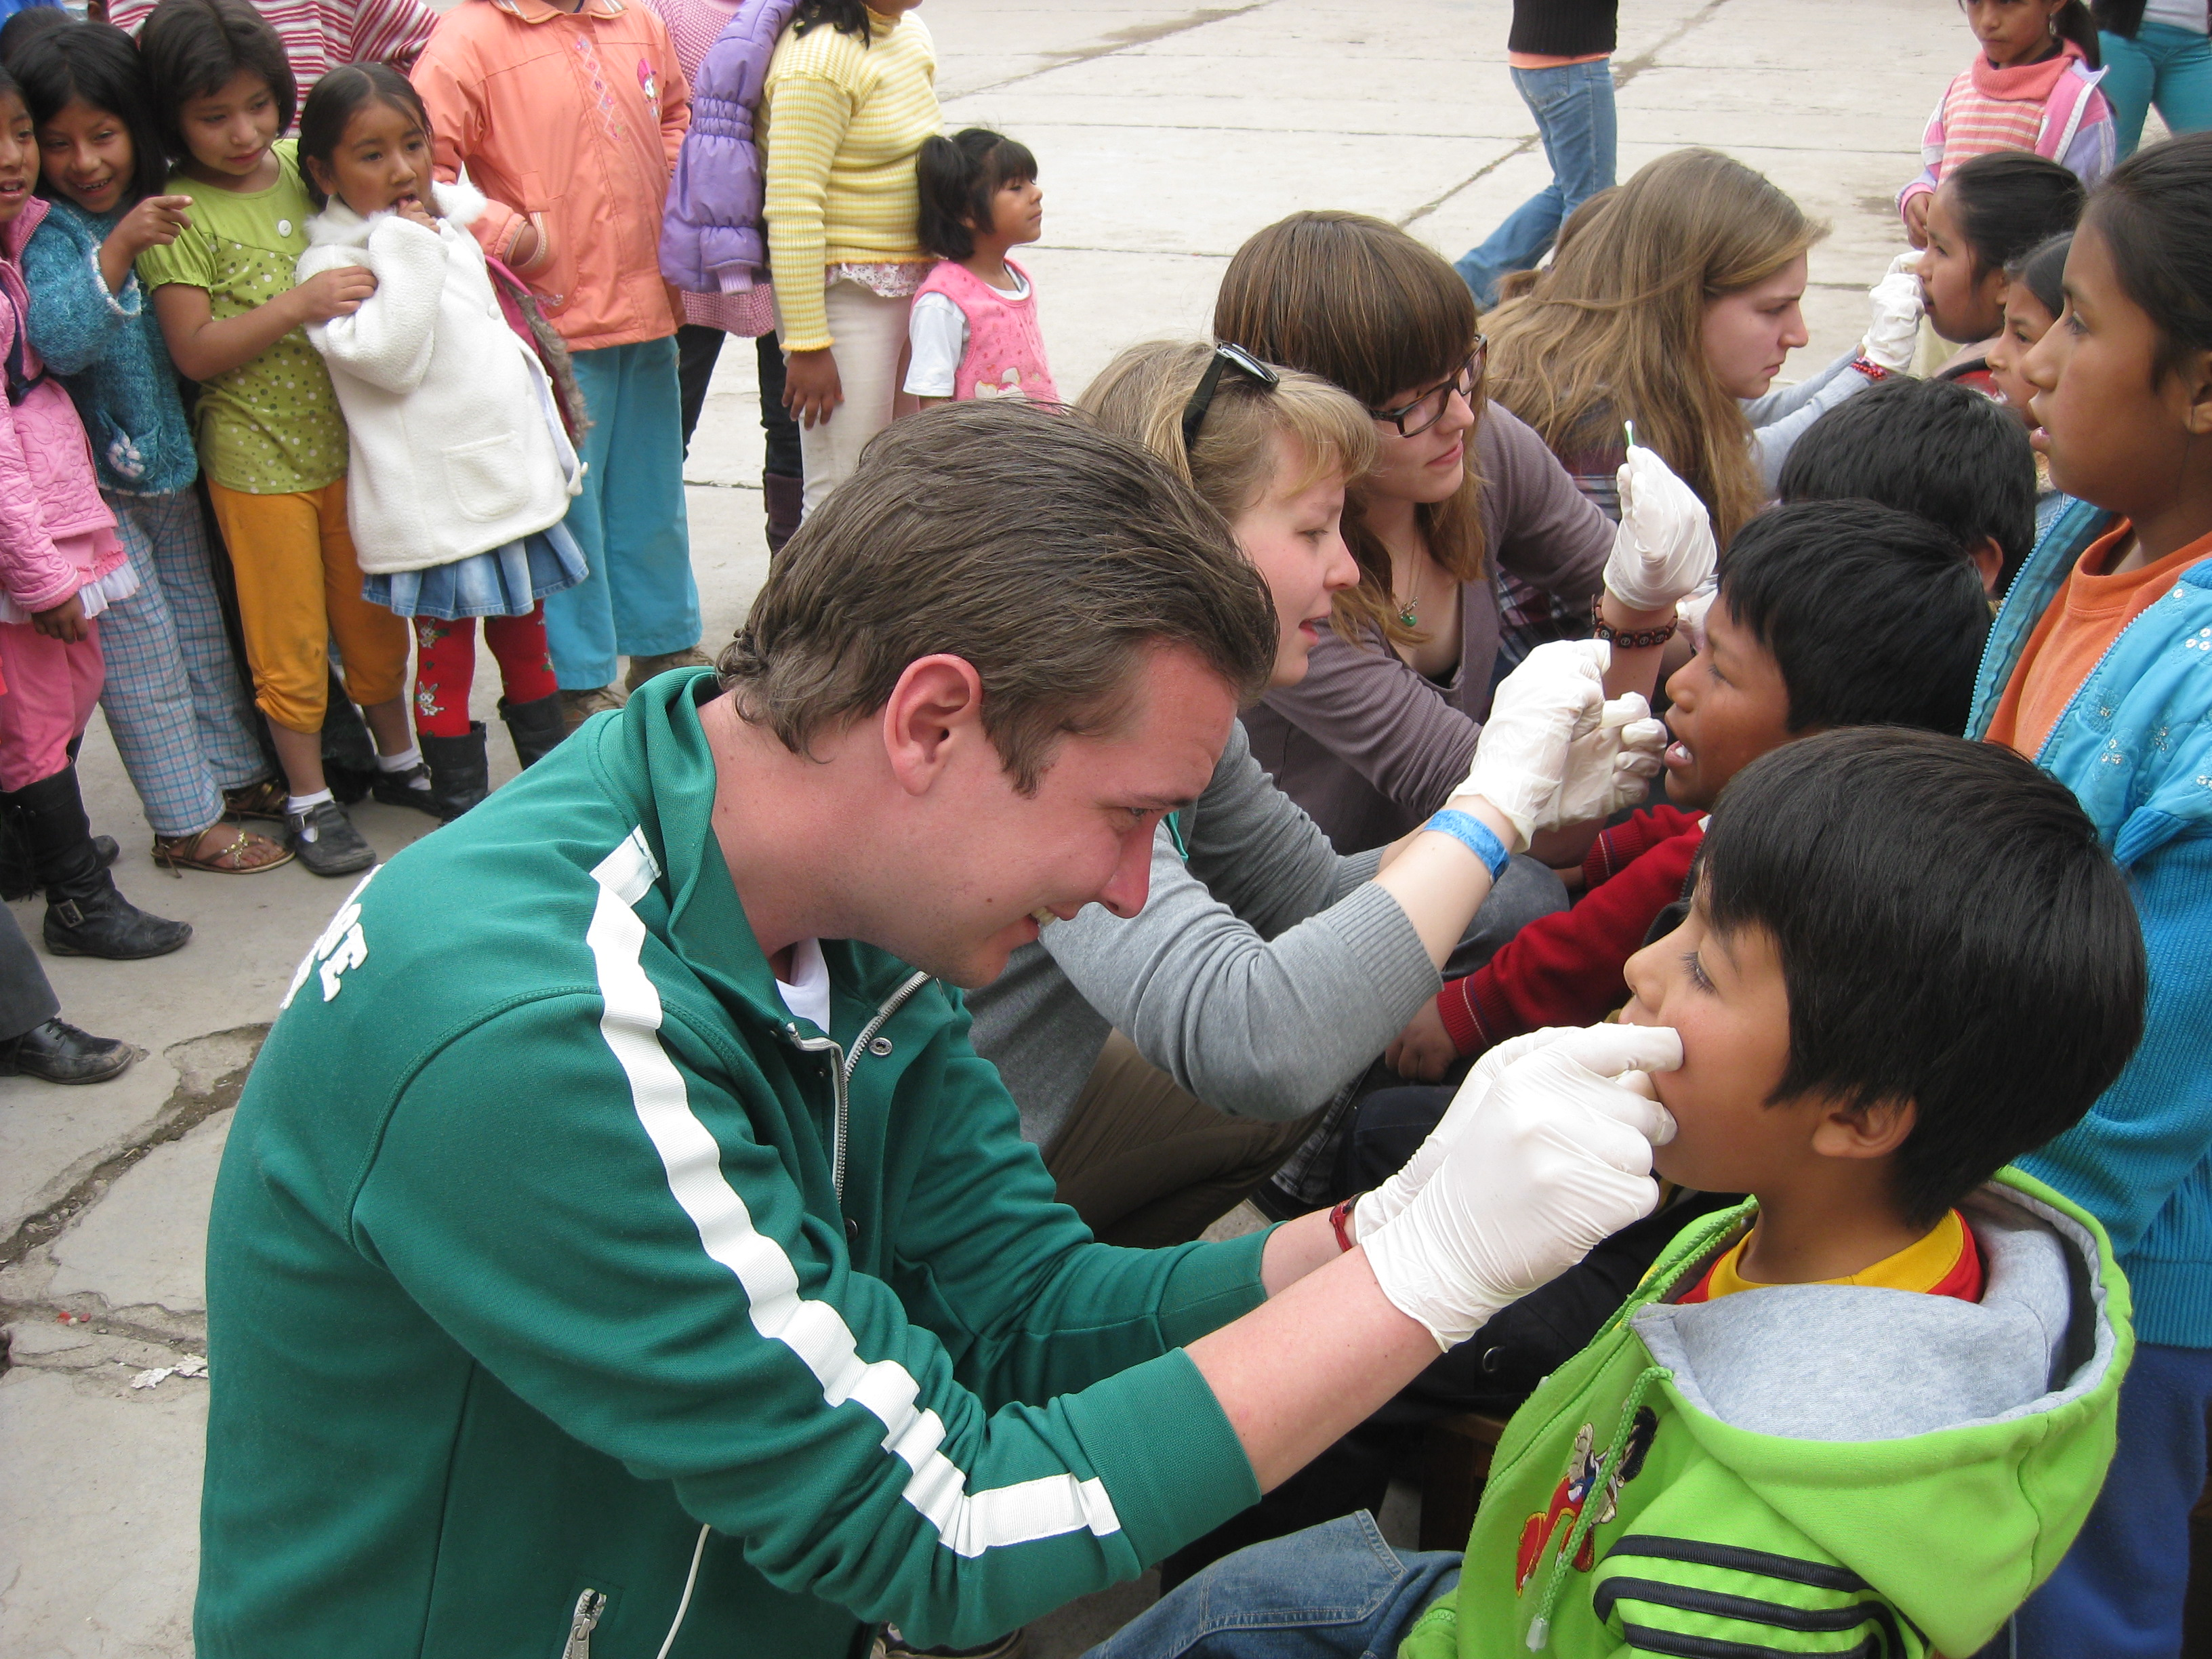 Gap Year Program - Projects Abroad: Gap Year Volunteering Abroad  6